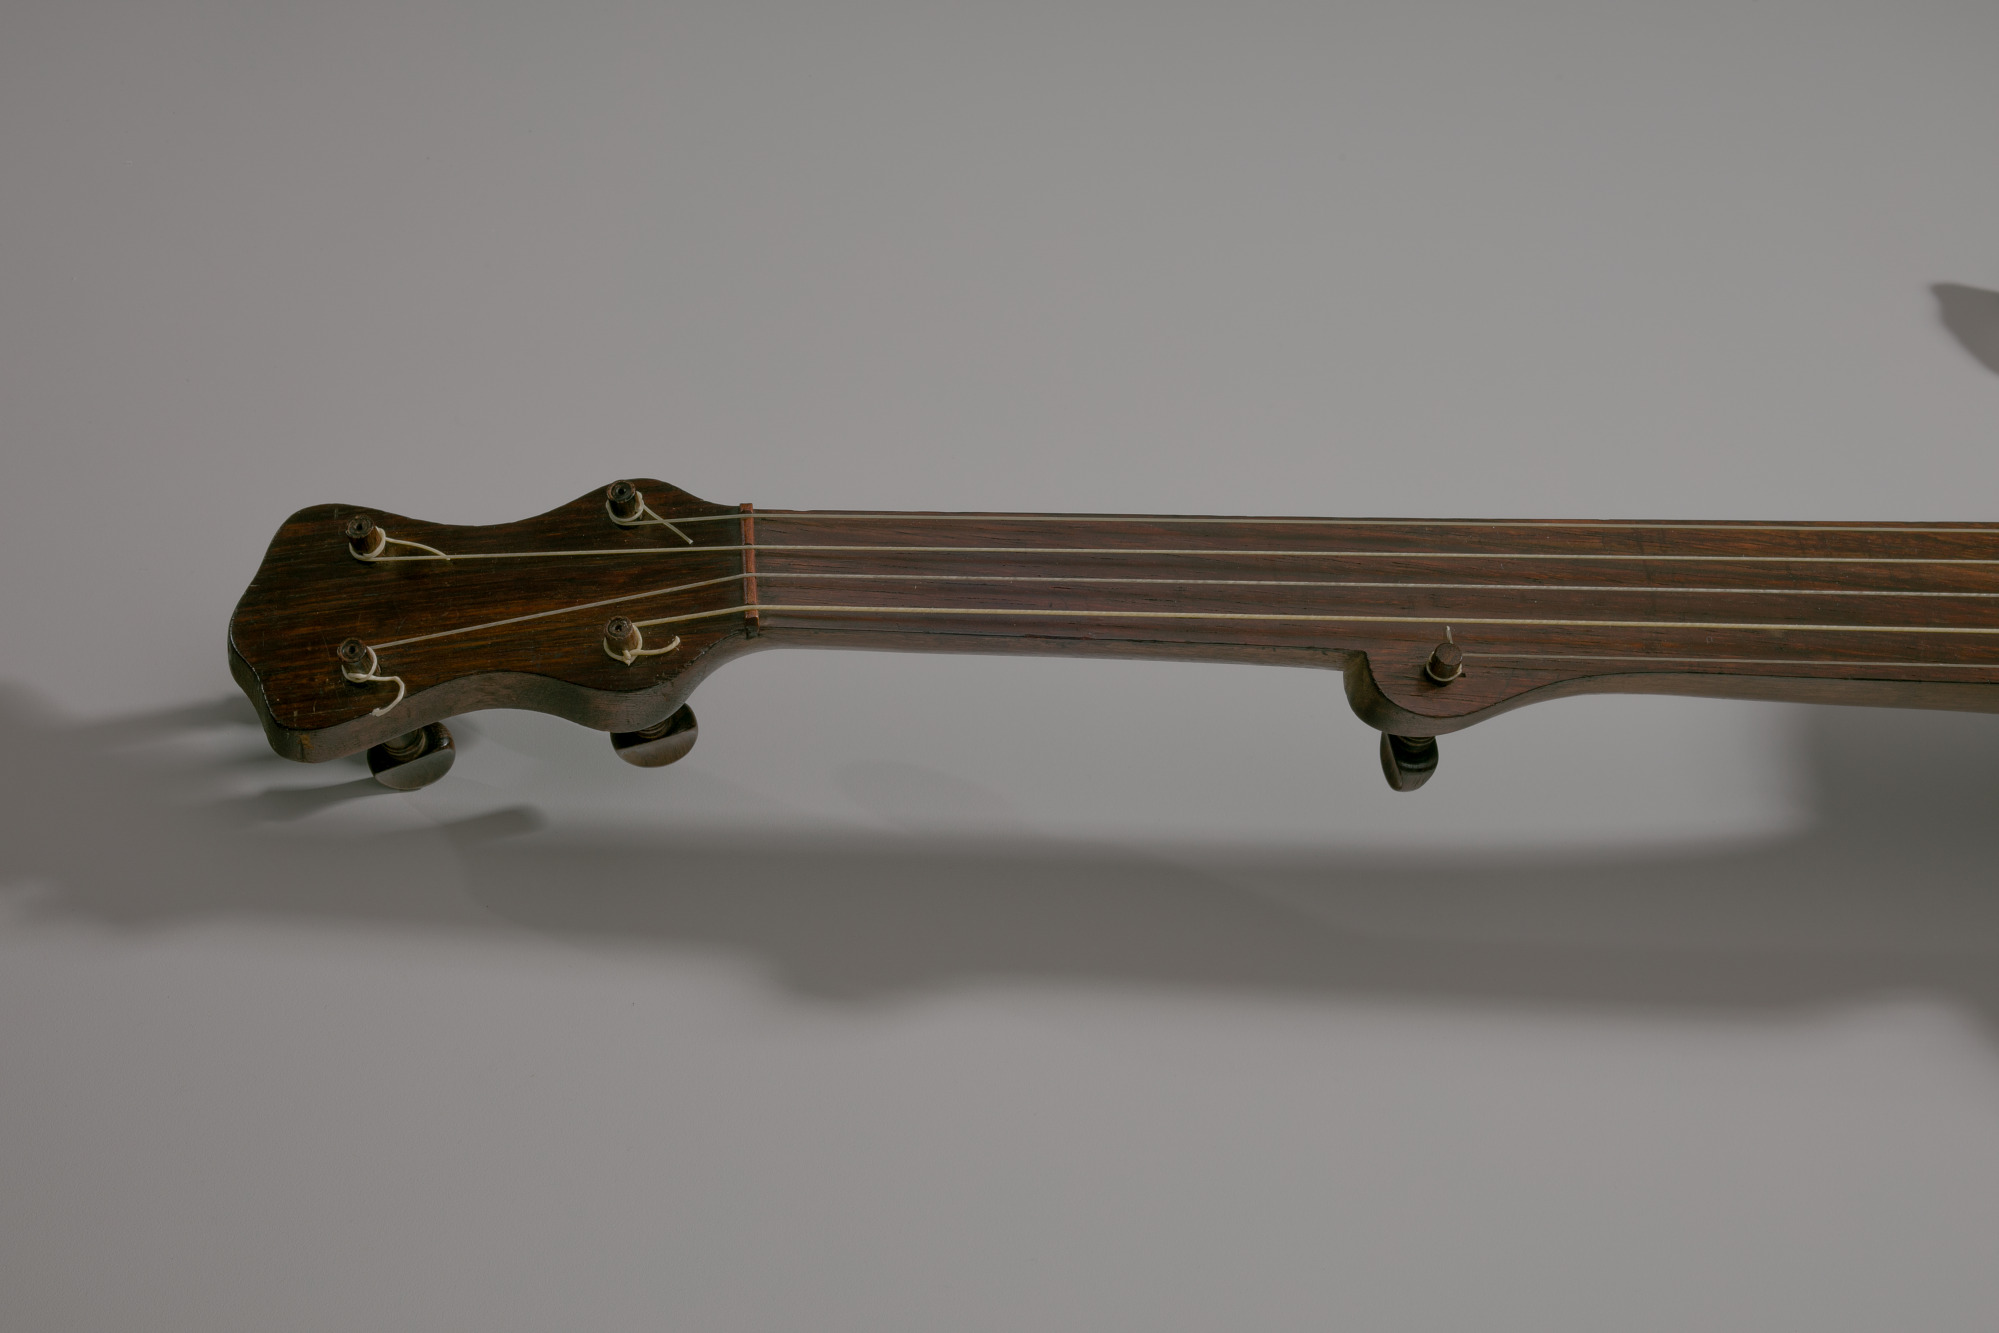 Banjo made in the style of William Esperance Boucher, Jr. - Image version 2